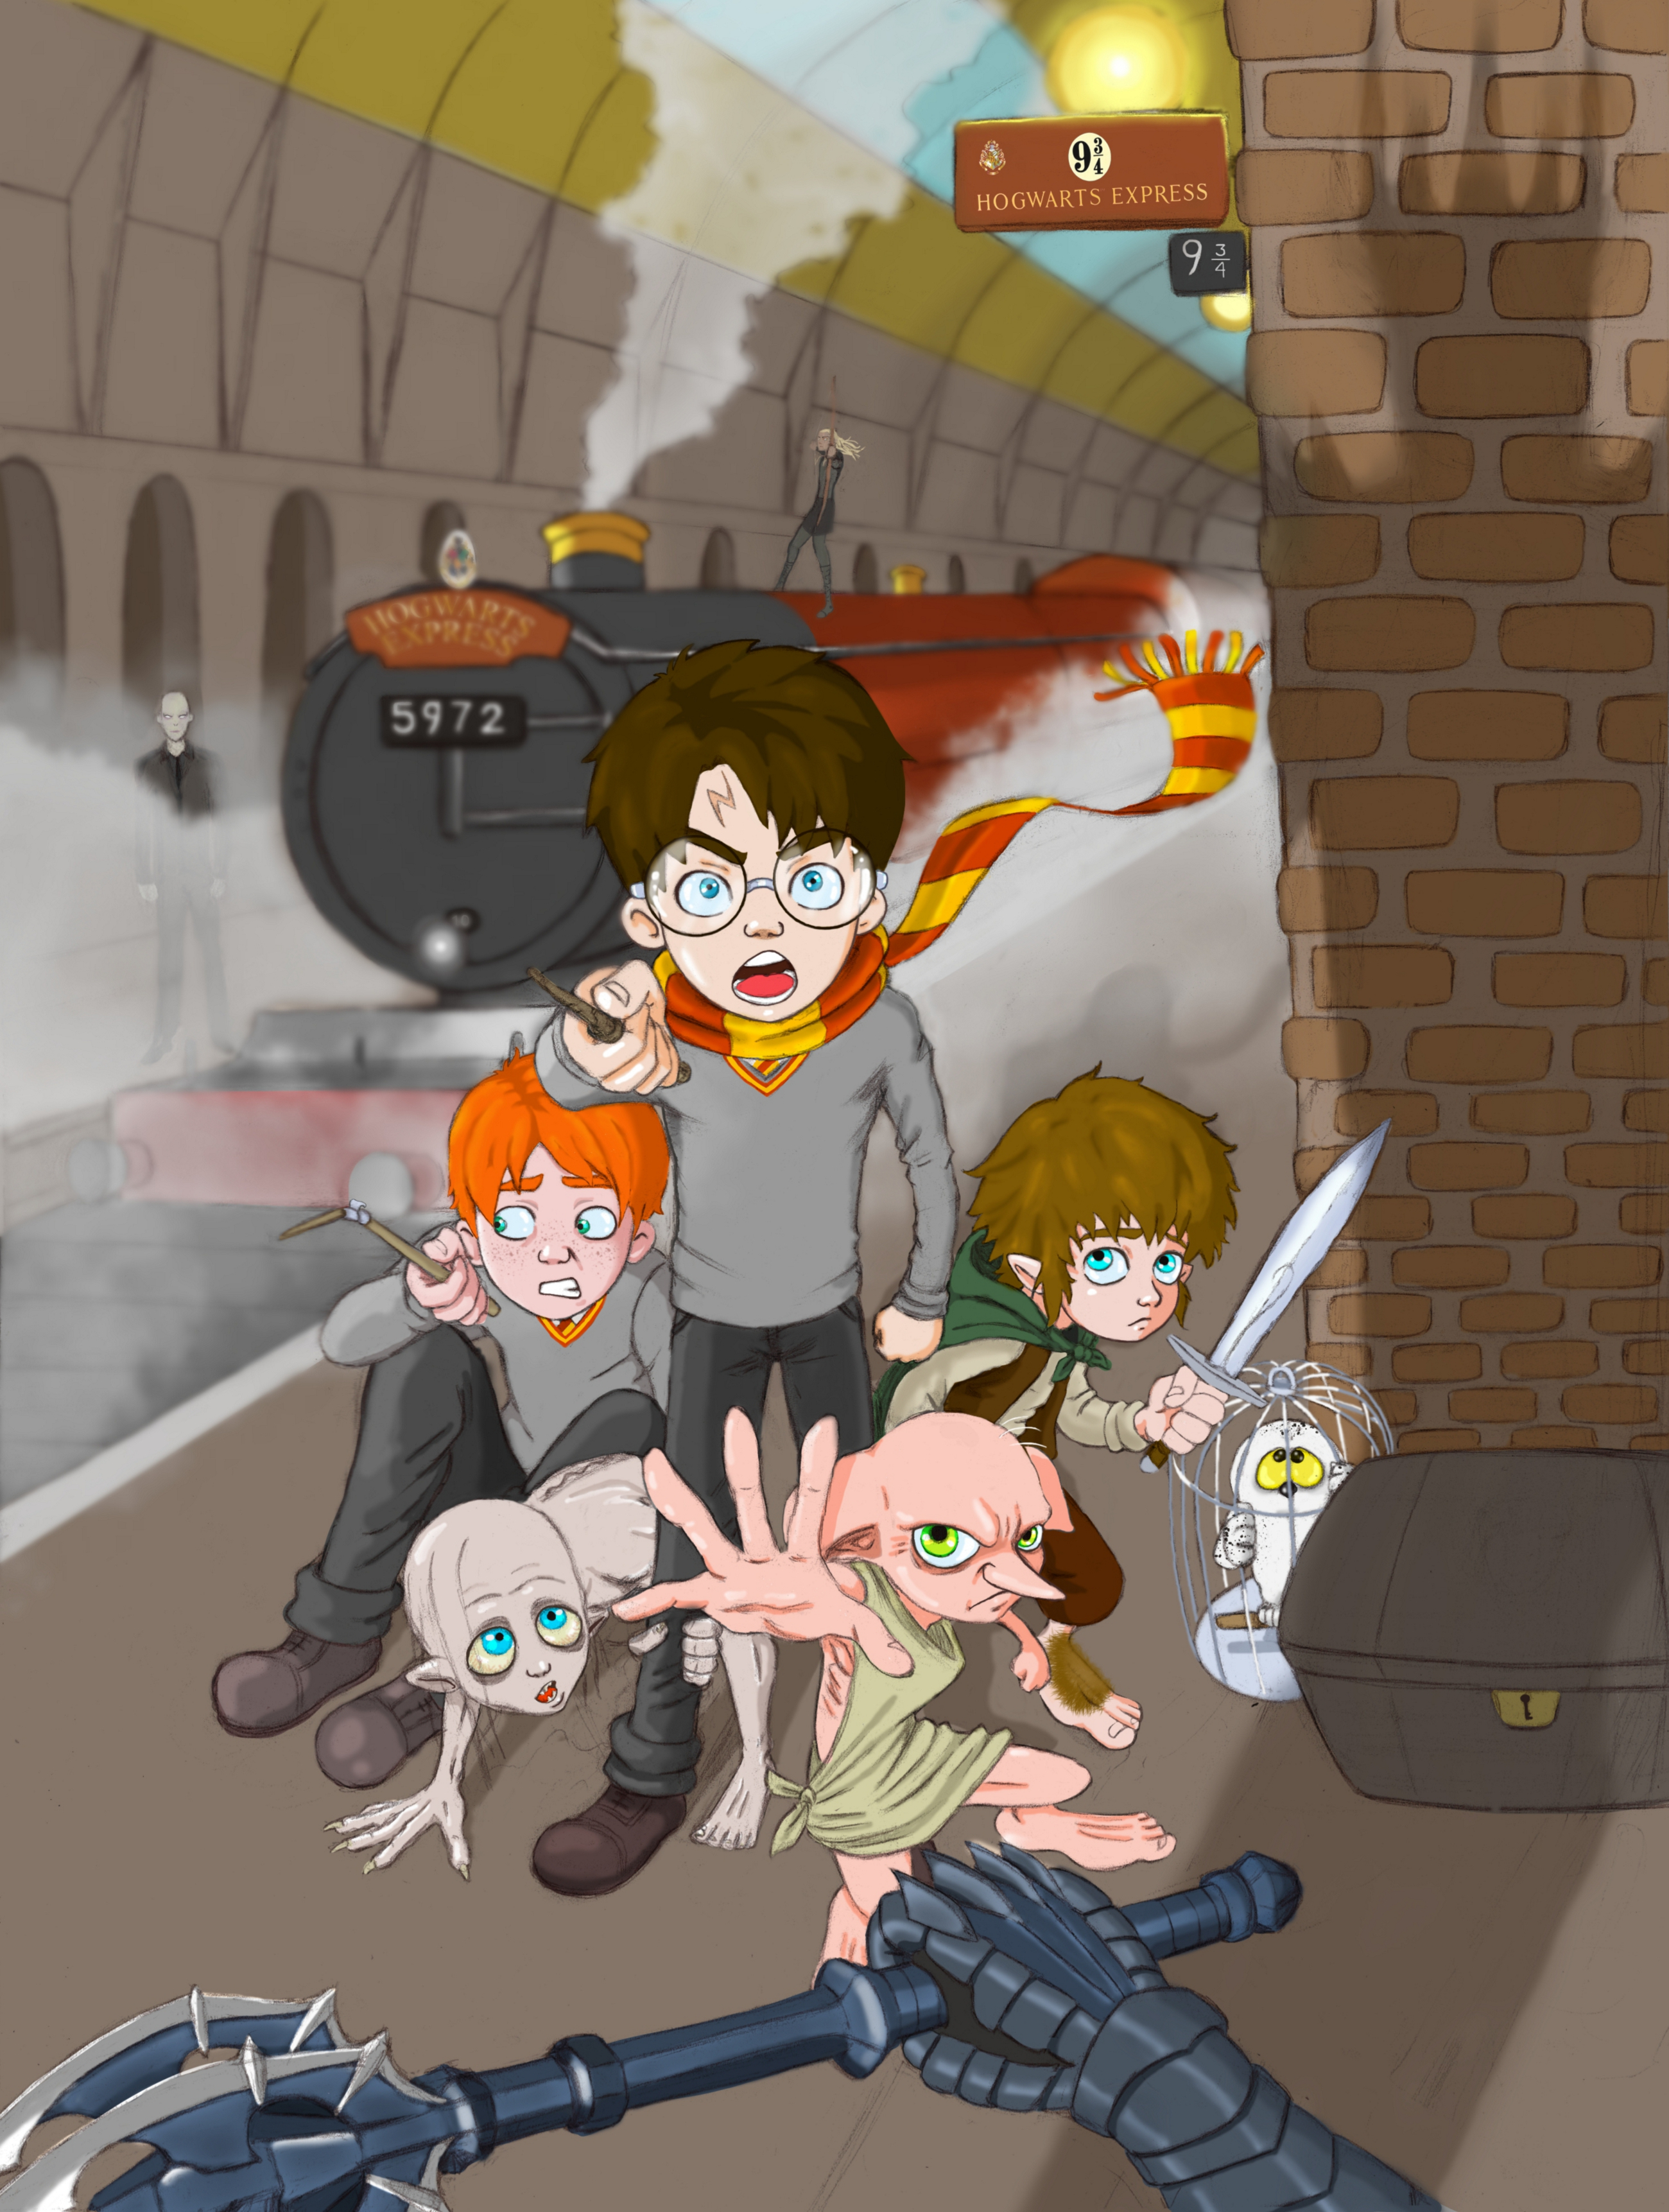 Lord of the Hogwarts